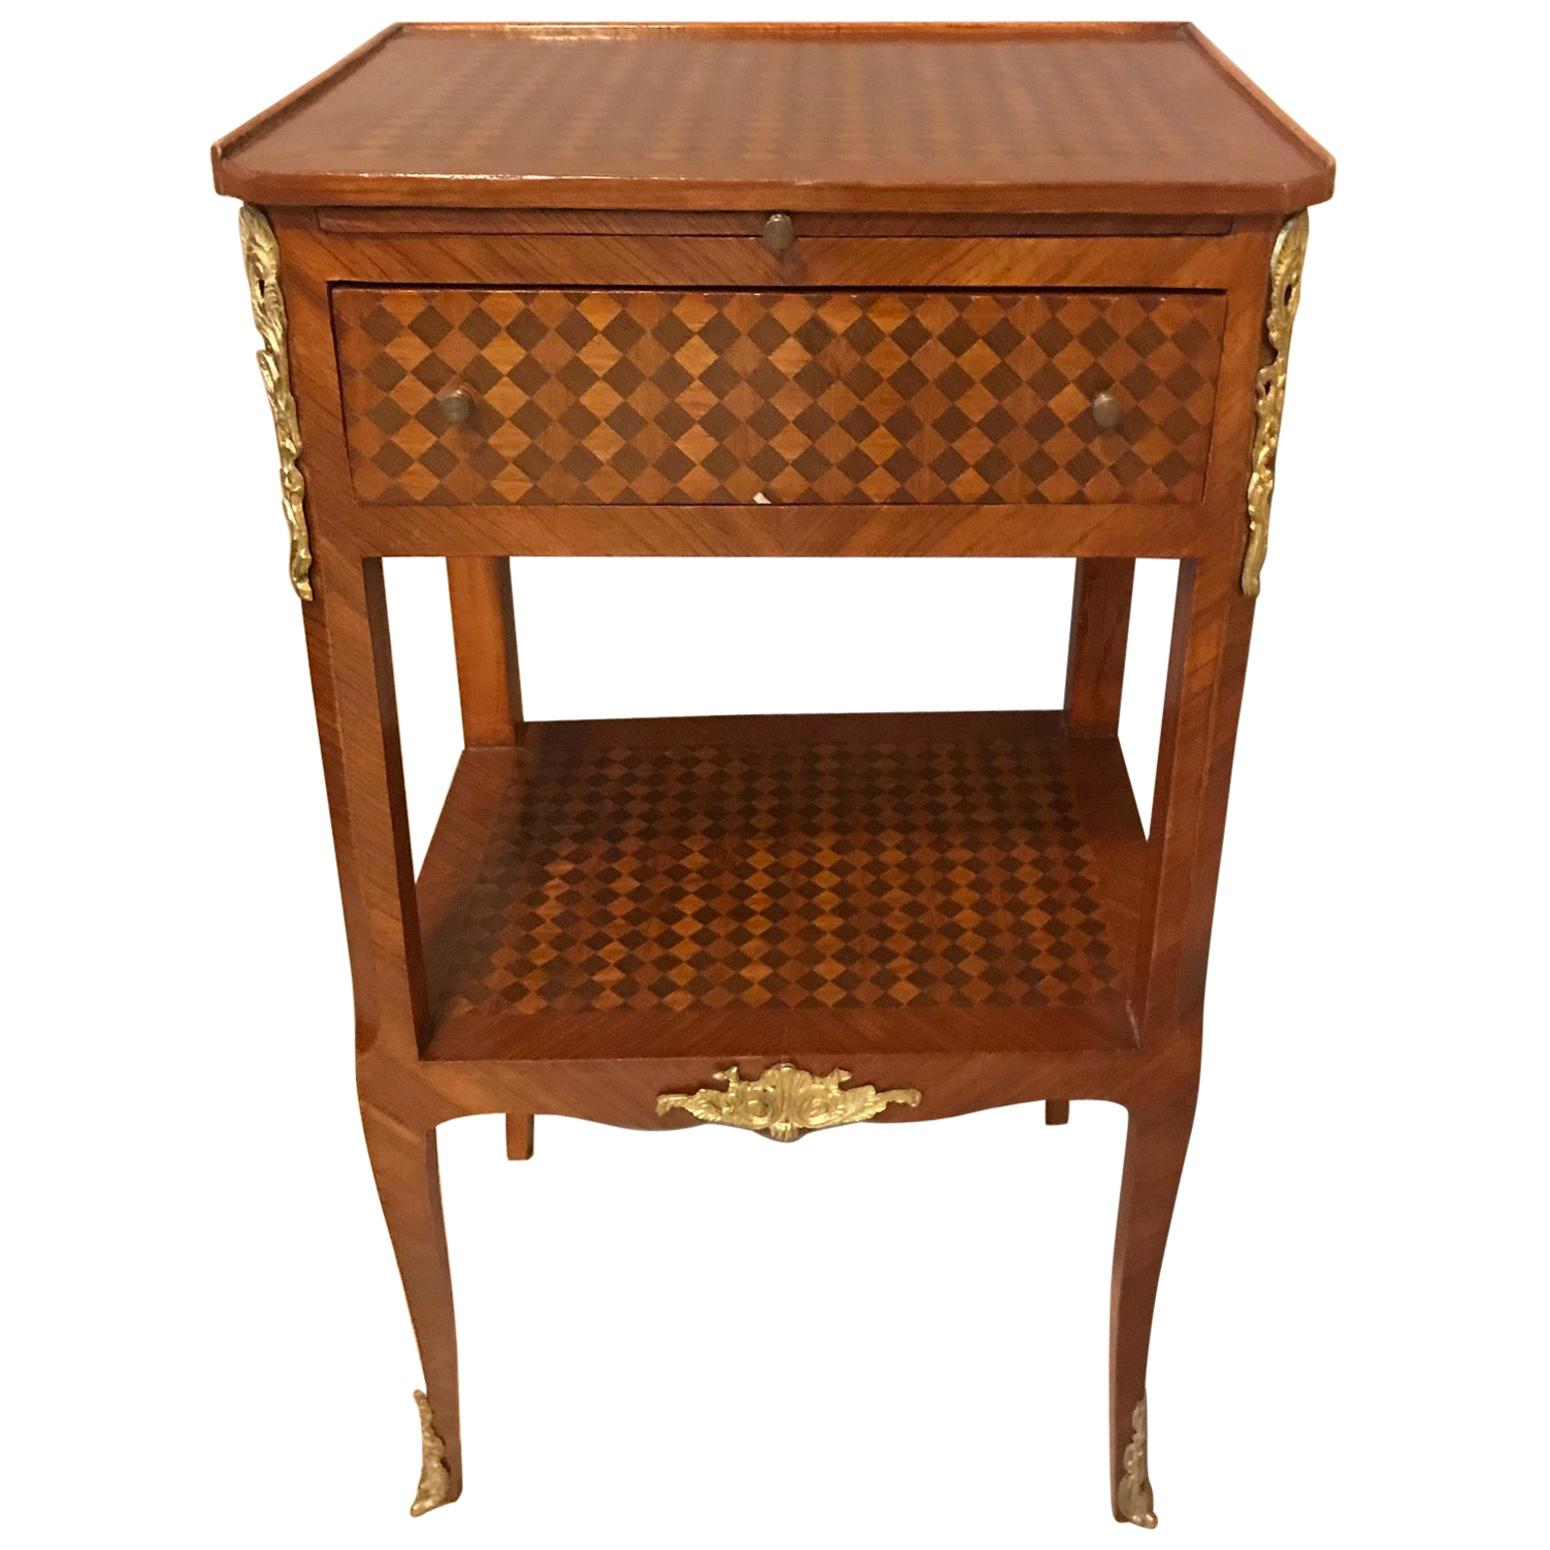 20th Century French Transition Style Mahogany Marquetry Bedside Table, 1920s